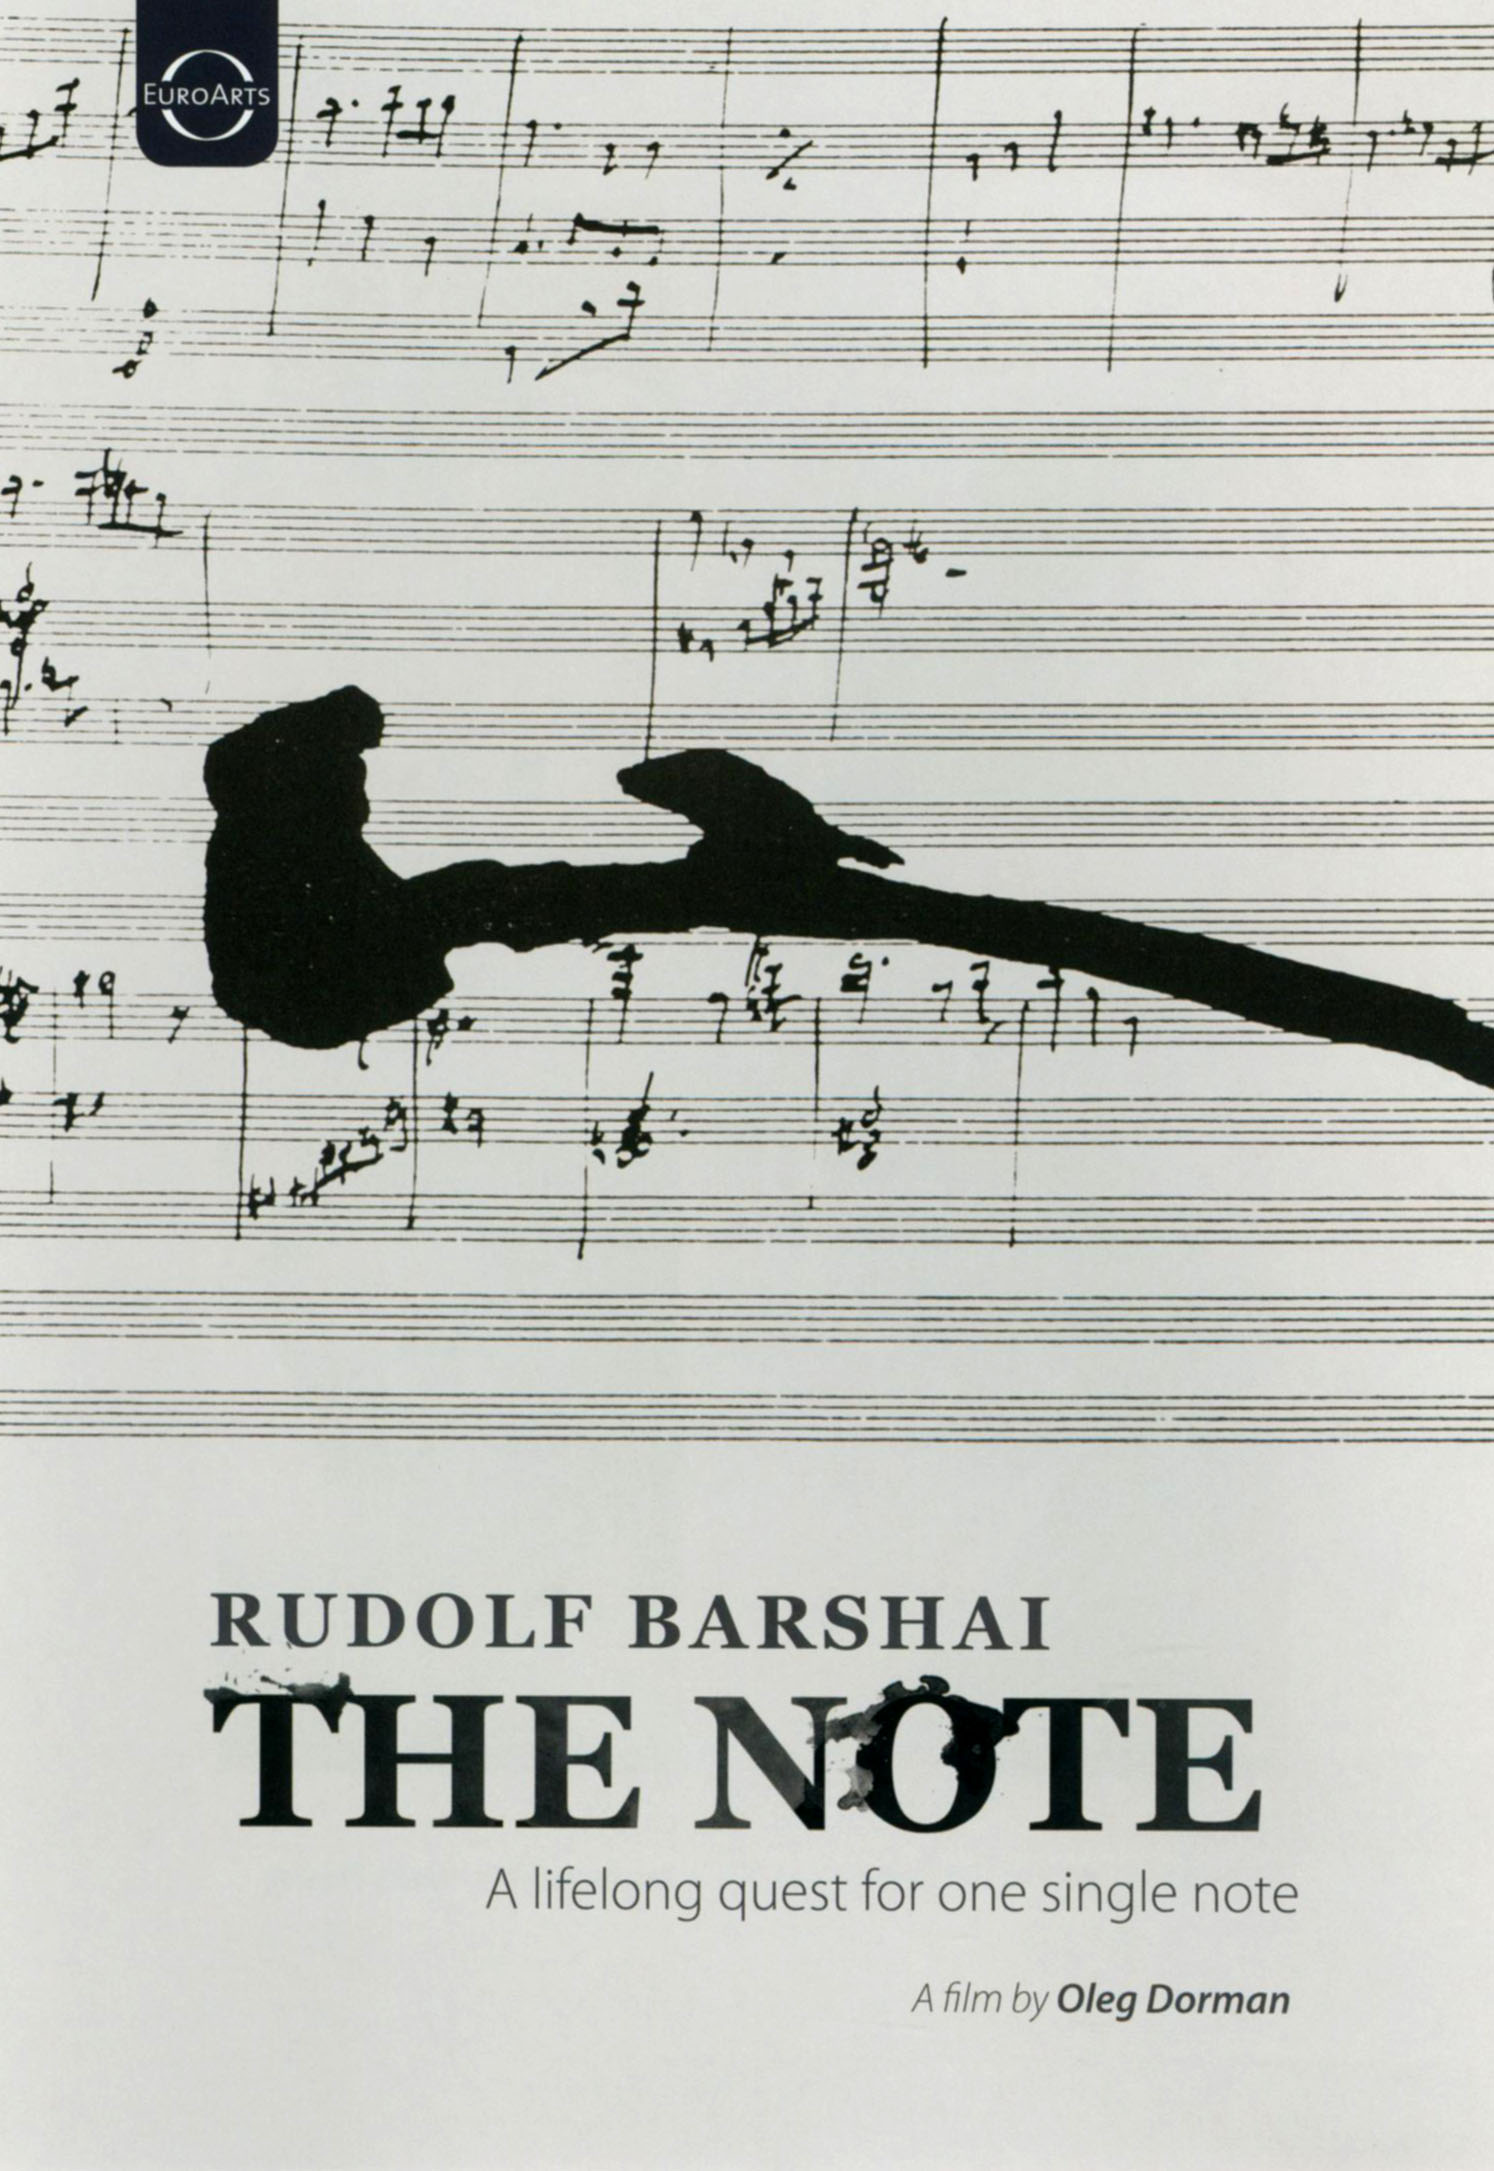 Rudolf Barshai: The Note - A Lifelong Quest for One Single Note